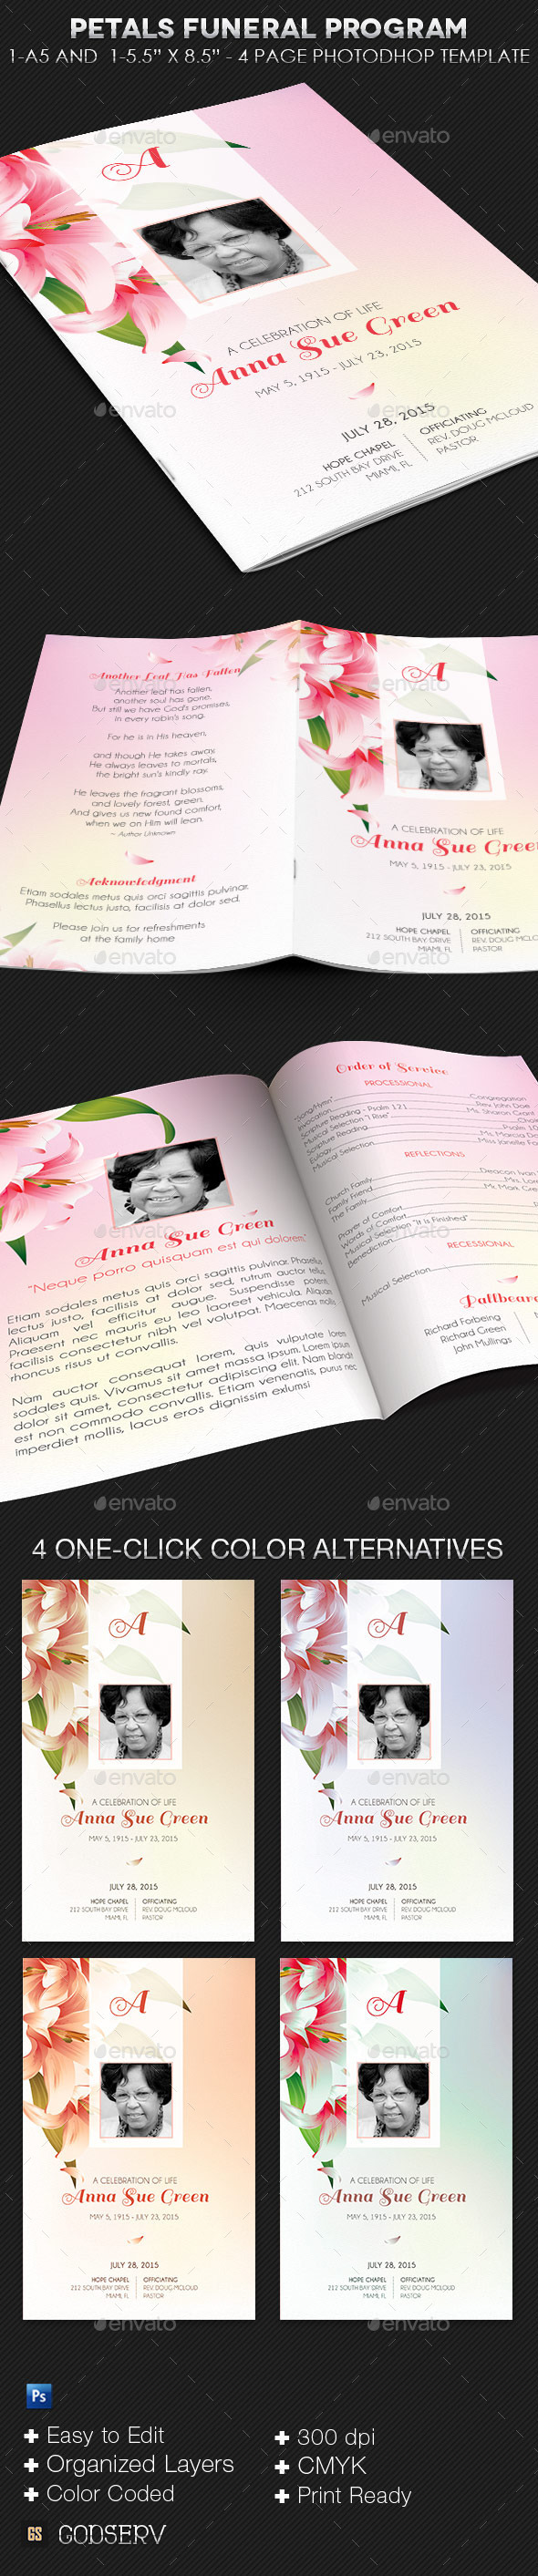 GraphicRiver Petals Funeral Program Template 9814524